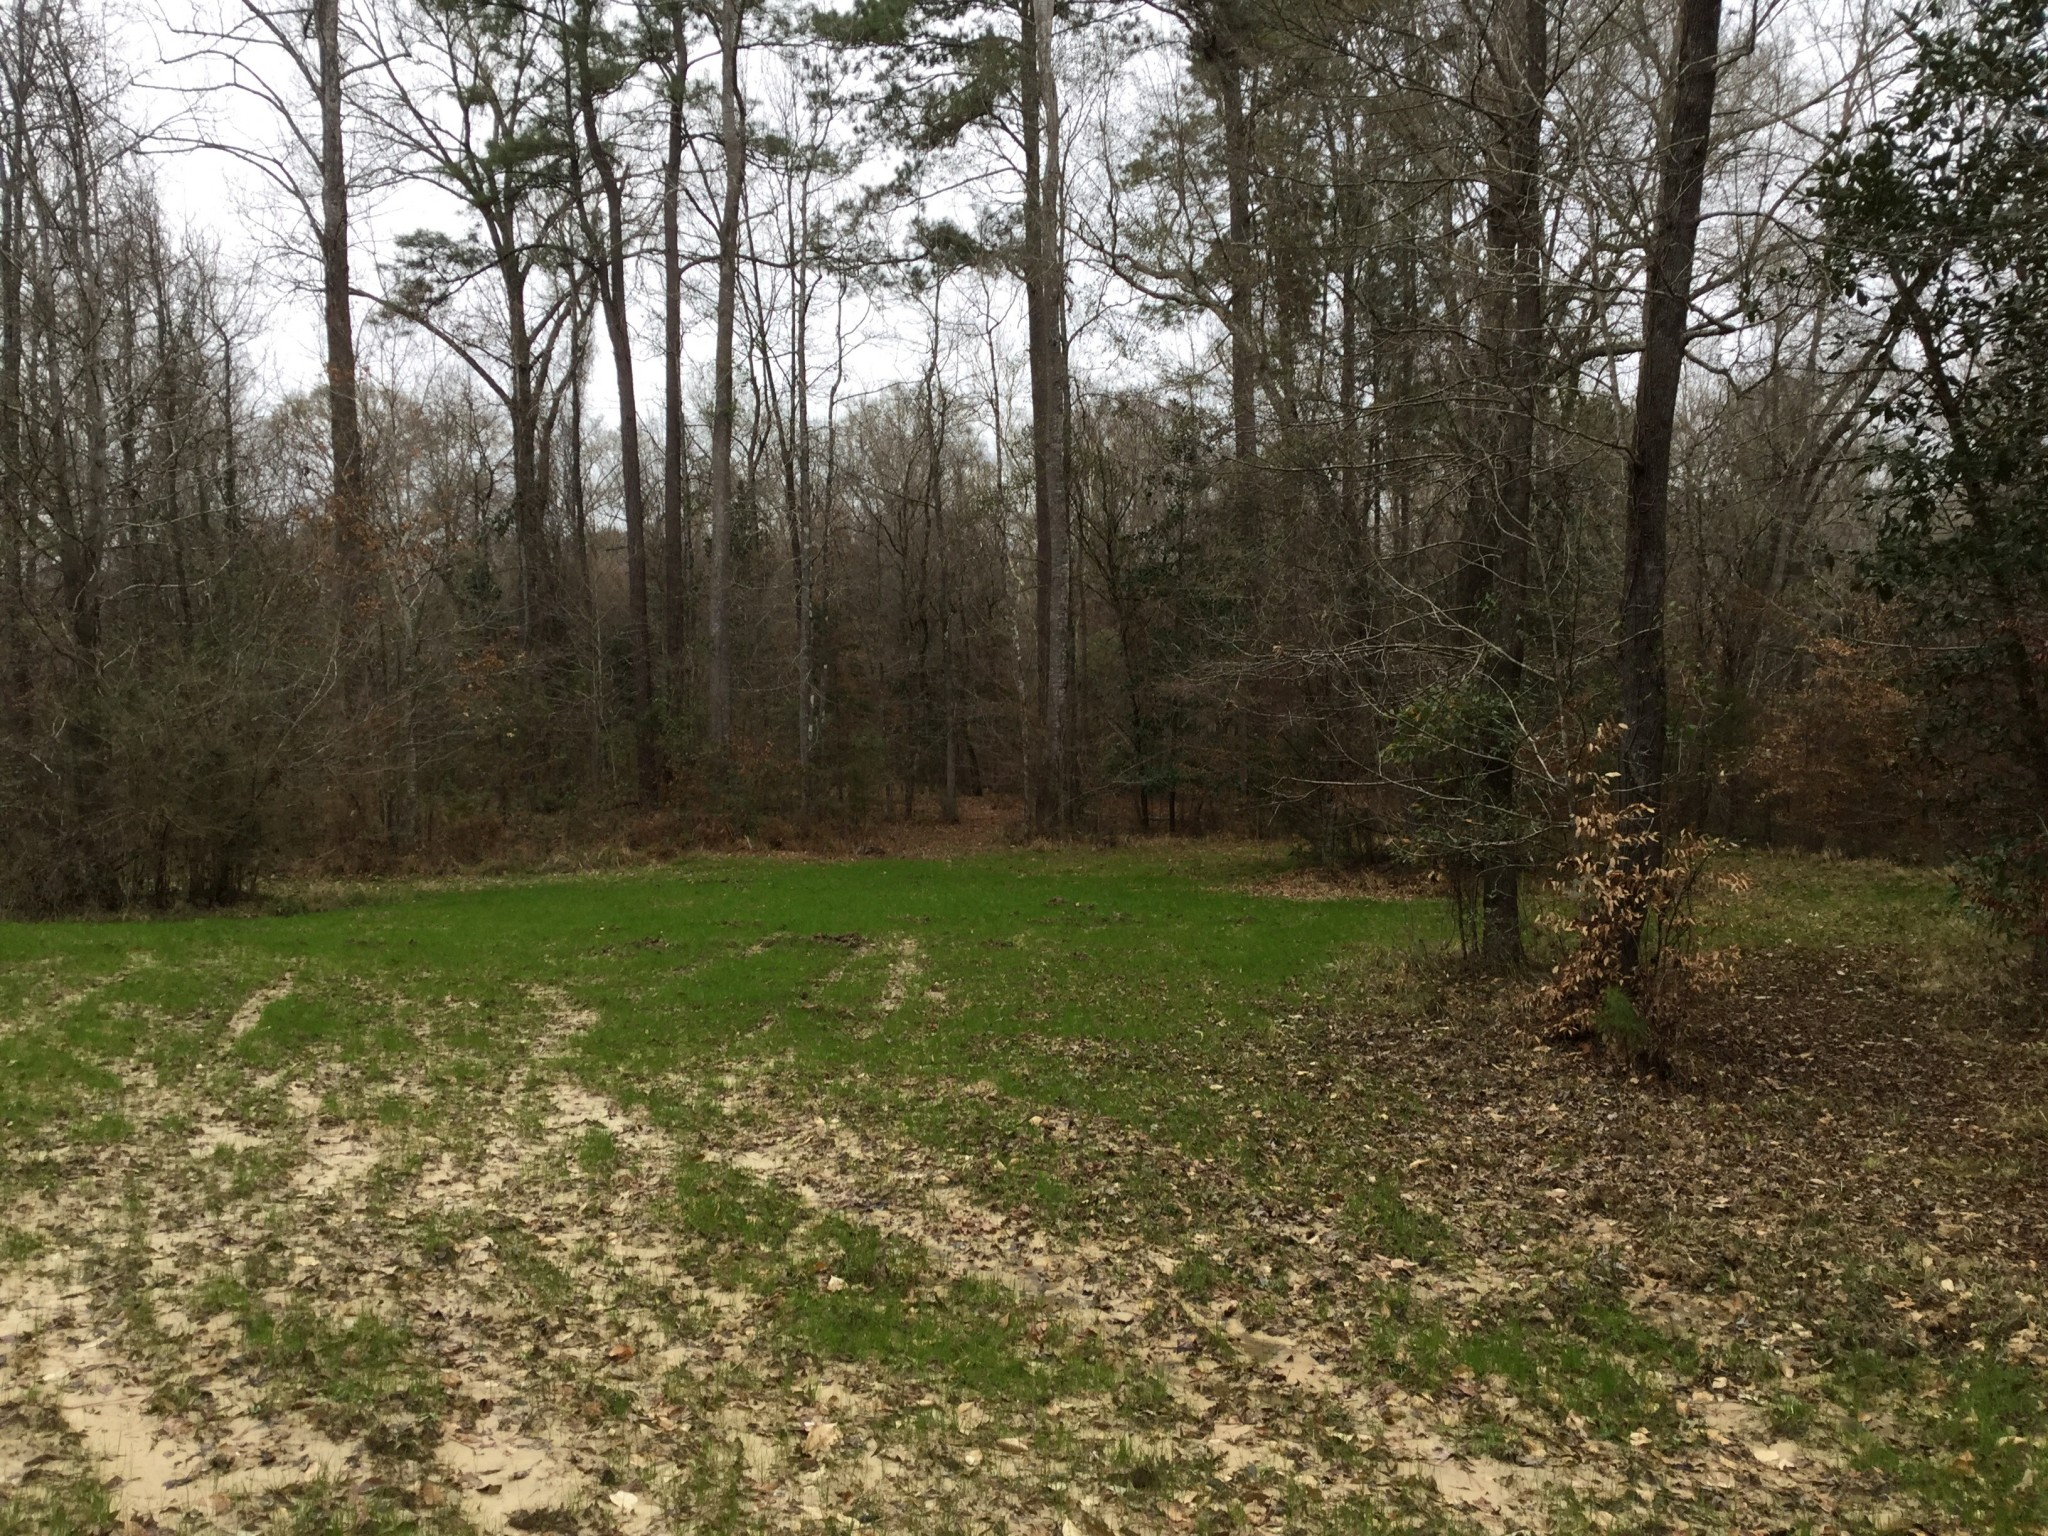 Cheerful Valley Lot 1A Tract, West Feliciana Parish, 6 Acres +/-